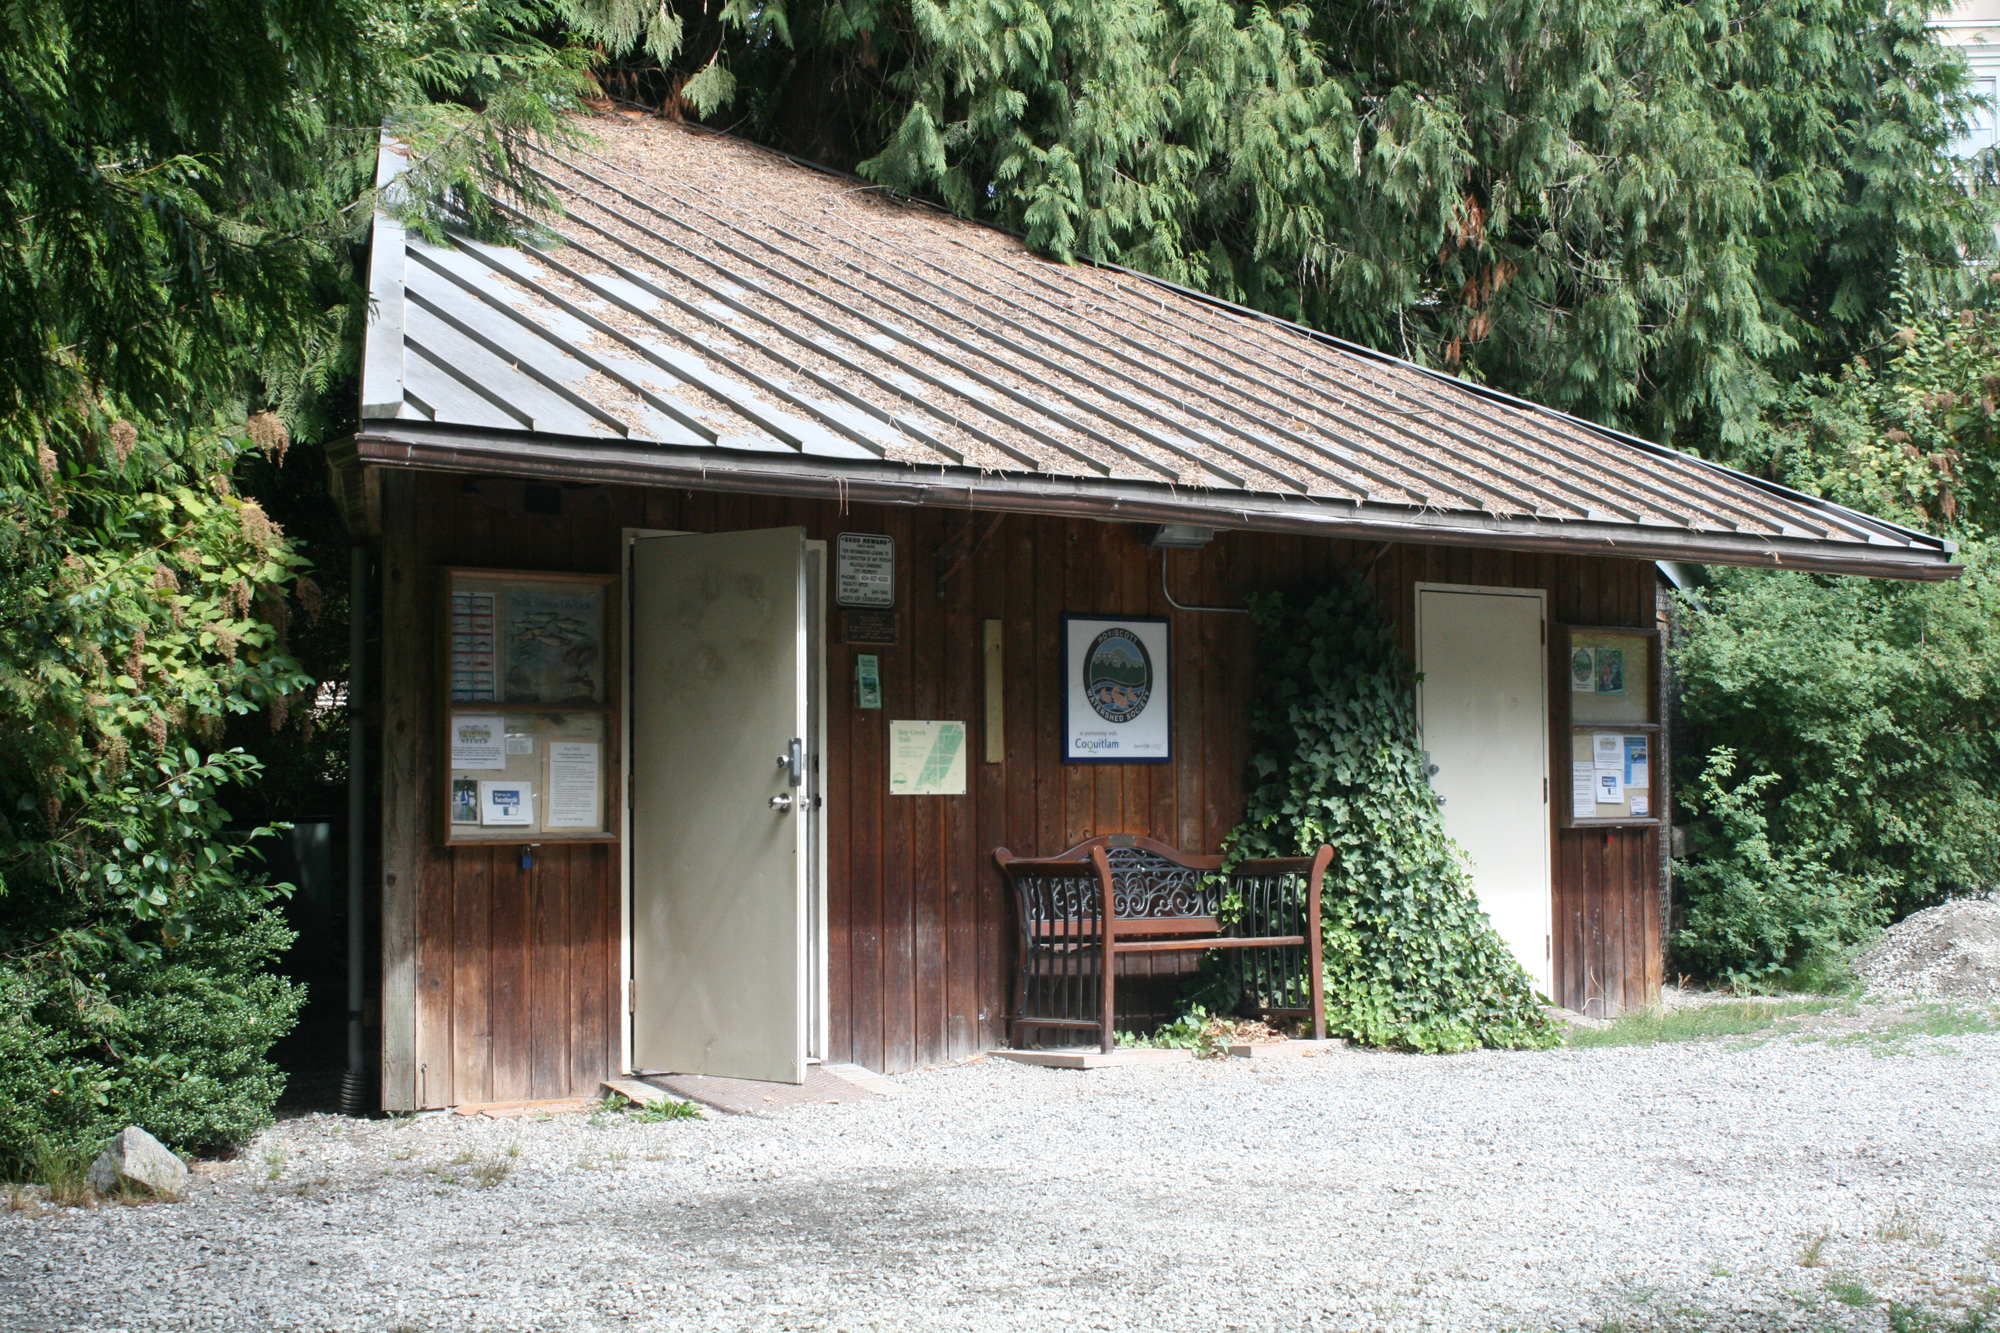 Hoy Creek Hatchery is located east of Douglas College David Lam campus in Coquitlam, along Hoy Trail.